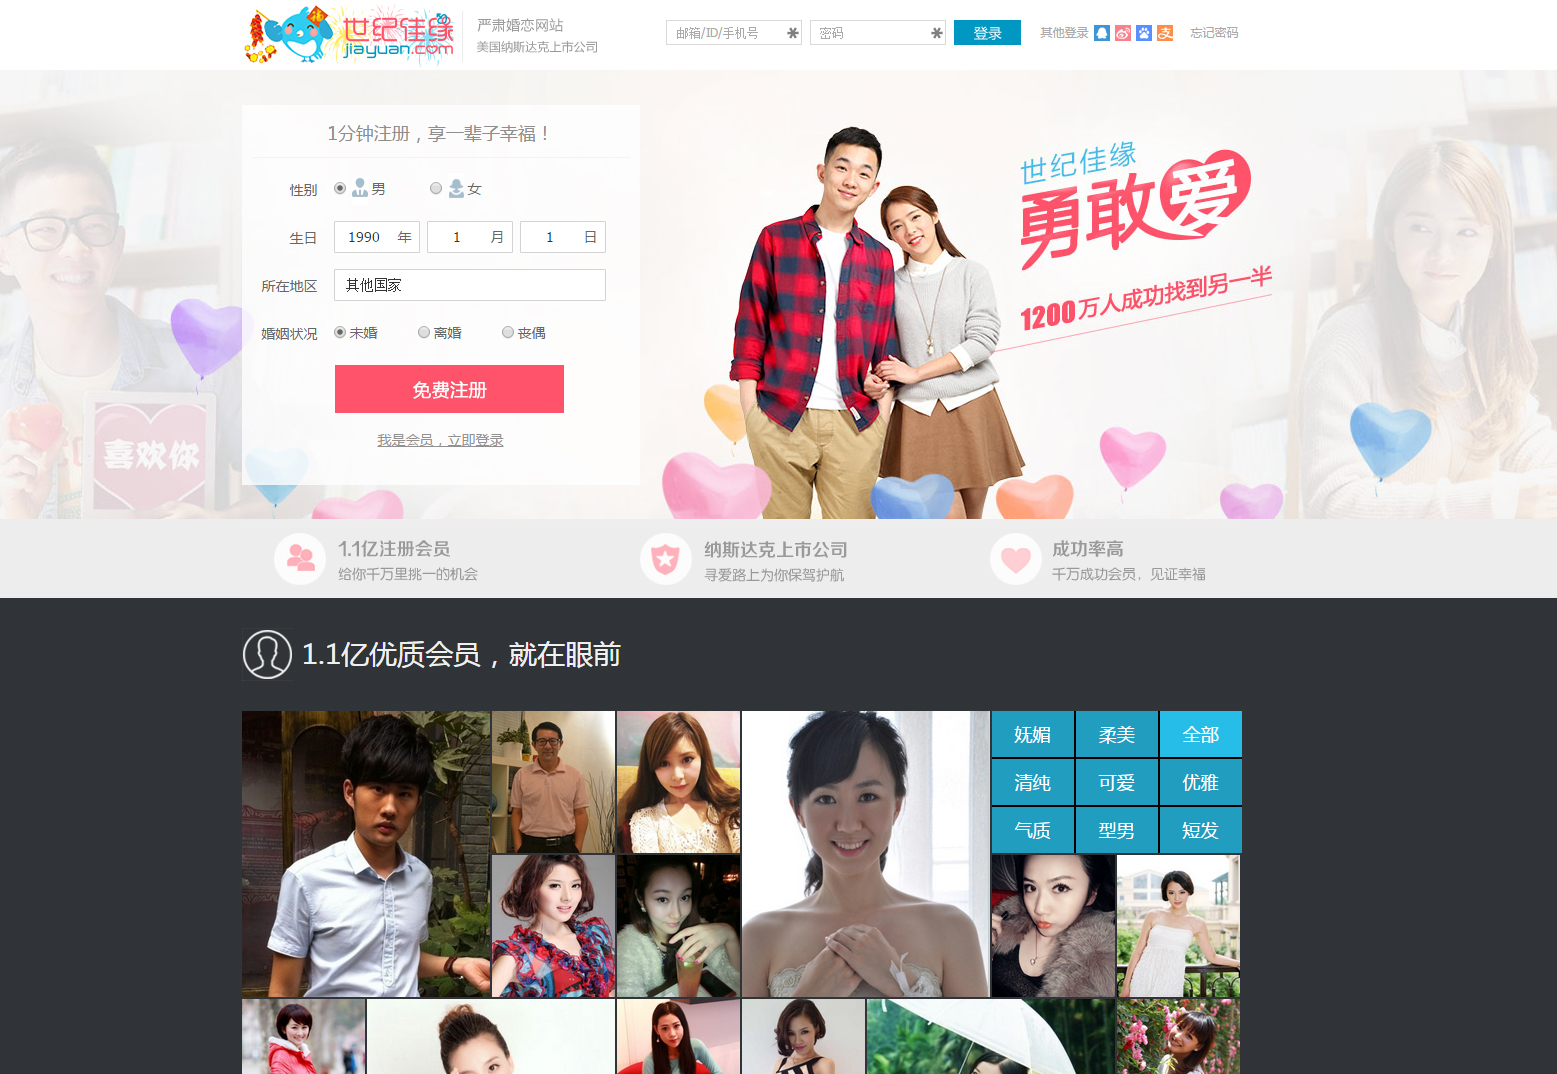 Best Chinese Dating Sites - Meet Chinese Singles Online at